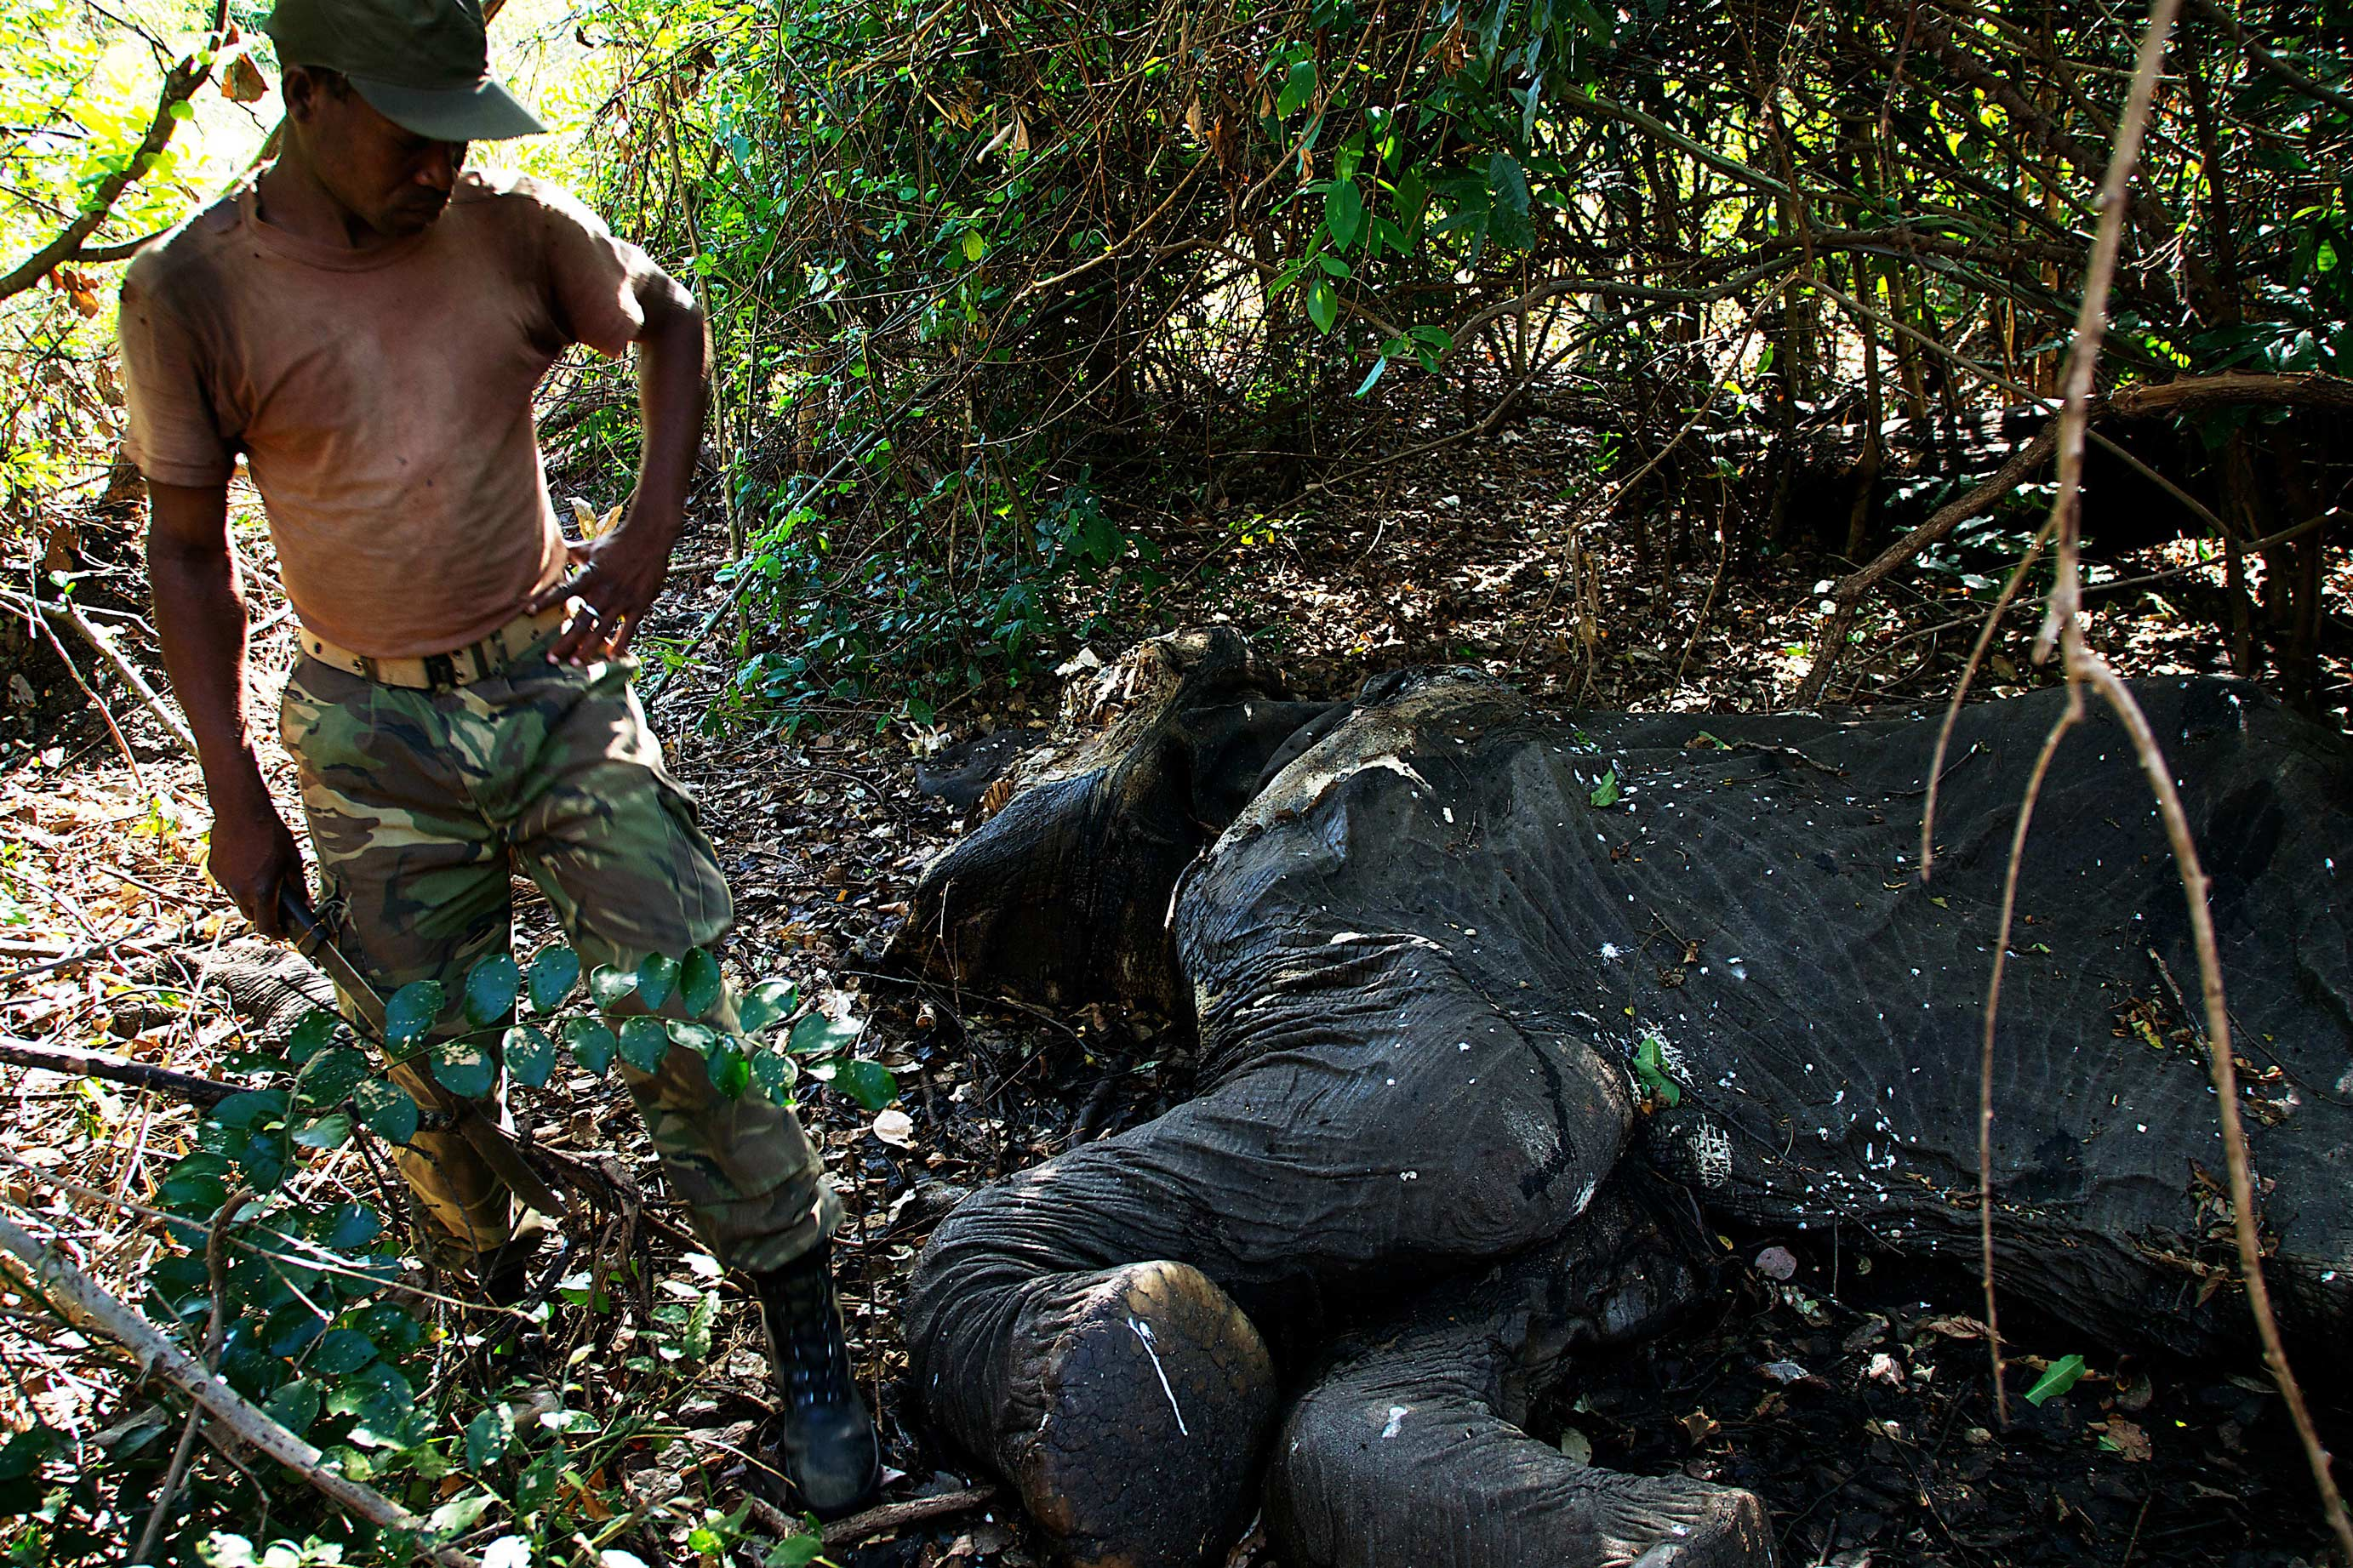 A bull elephant lies dead in the forest. The animal was killed two weeks earlier, when a team of poachers entered the Quirimbas National Park and killed four elephants in two days.